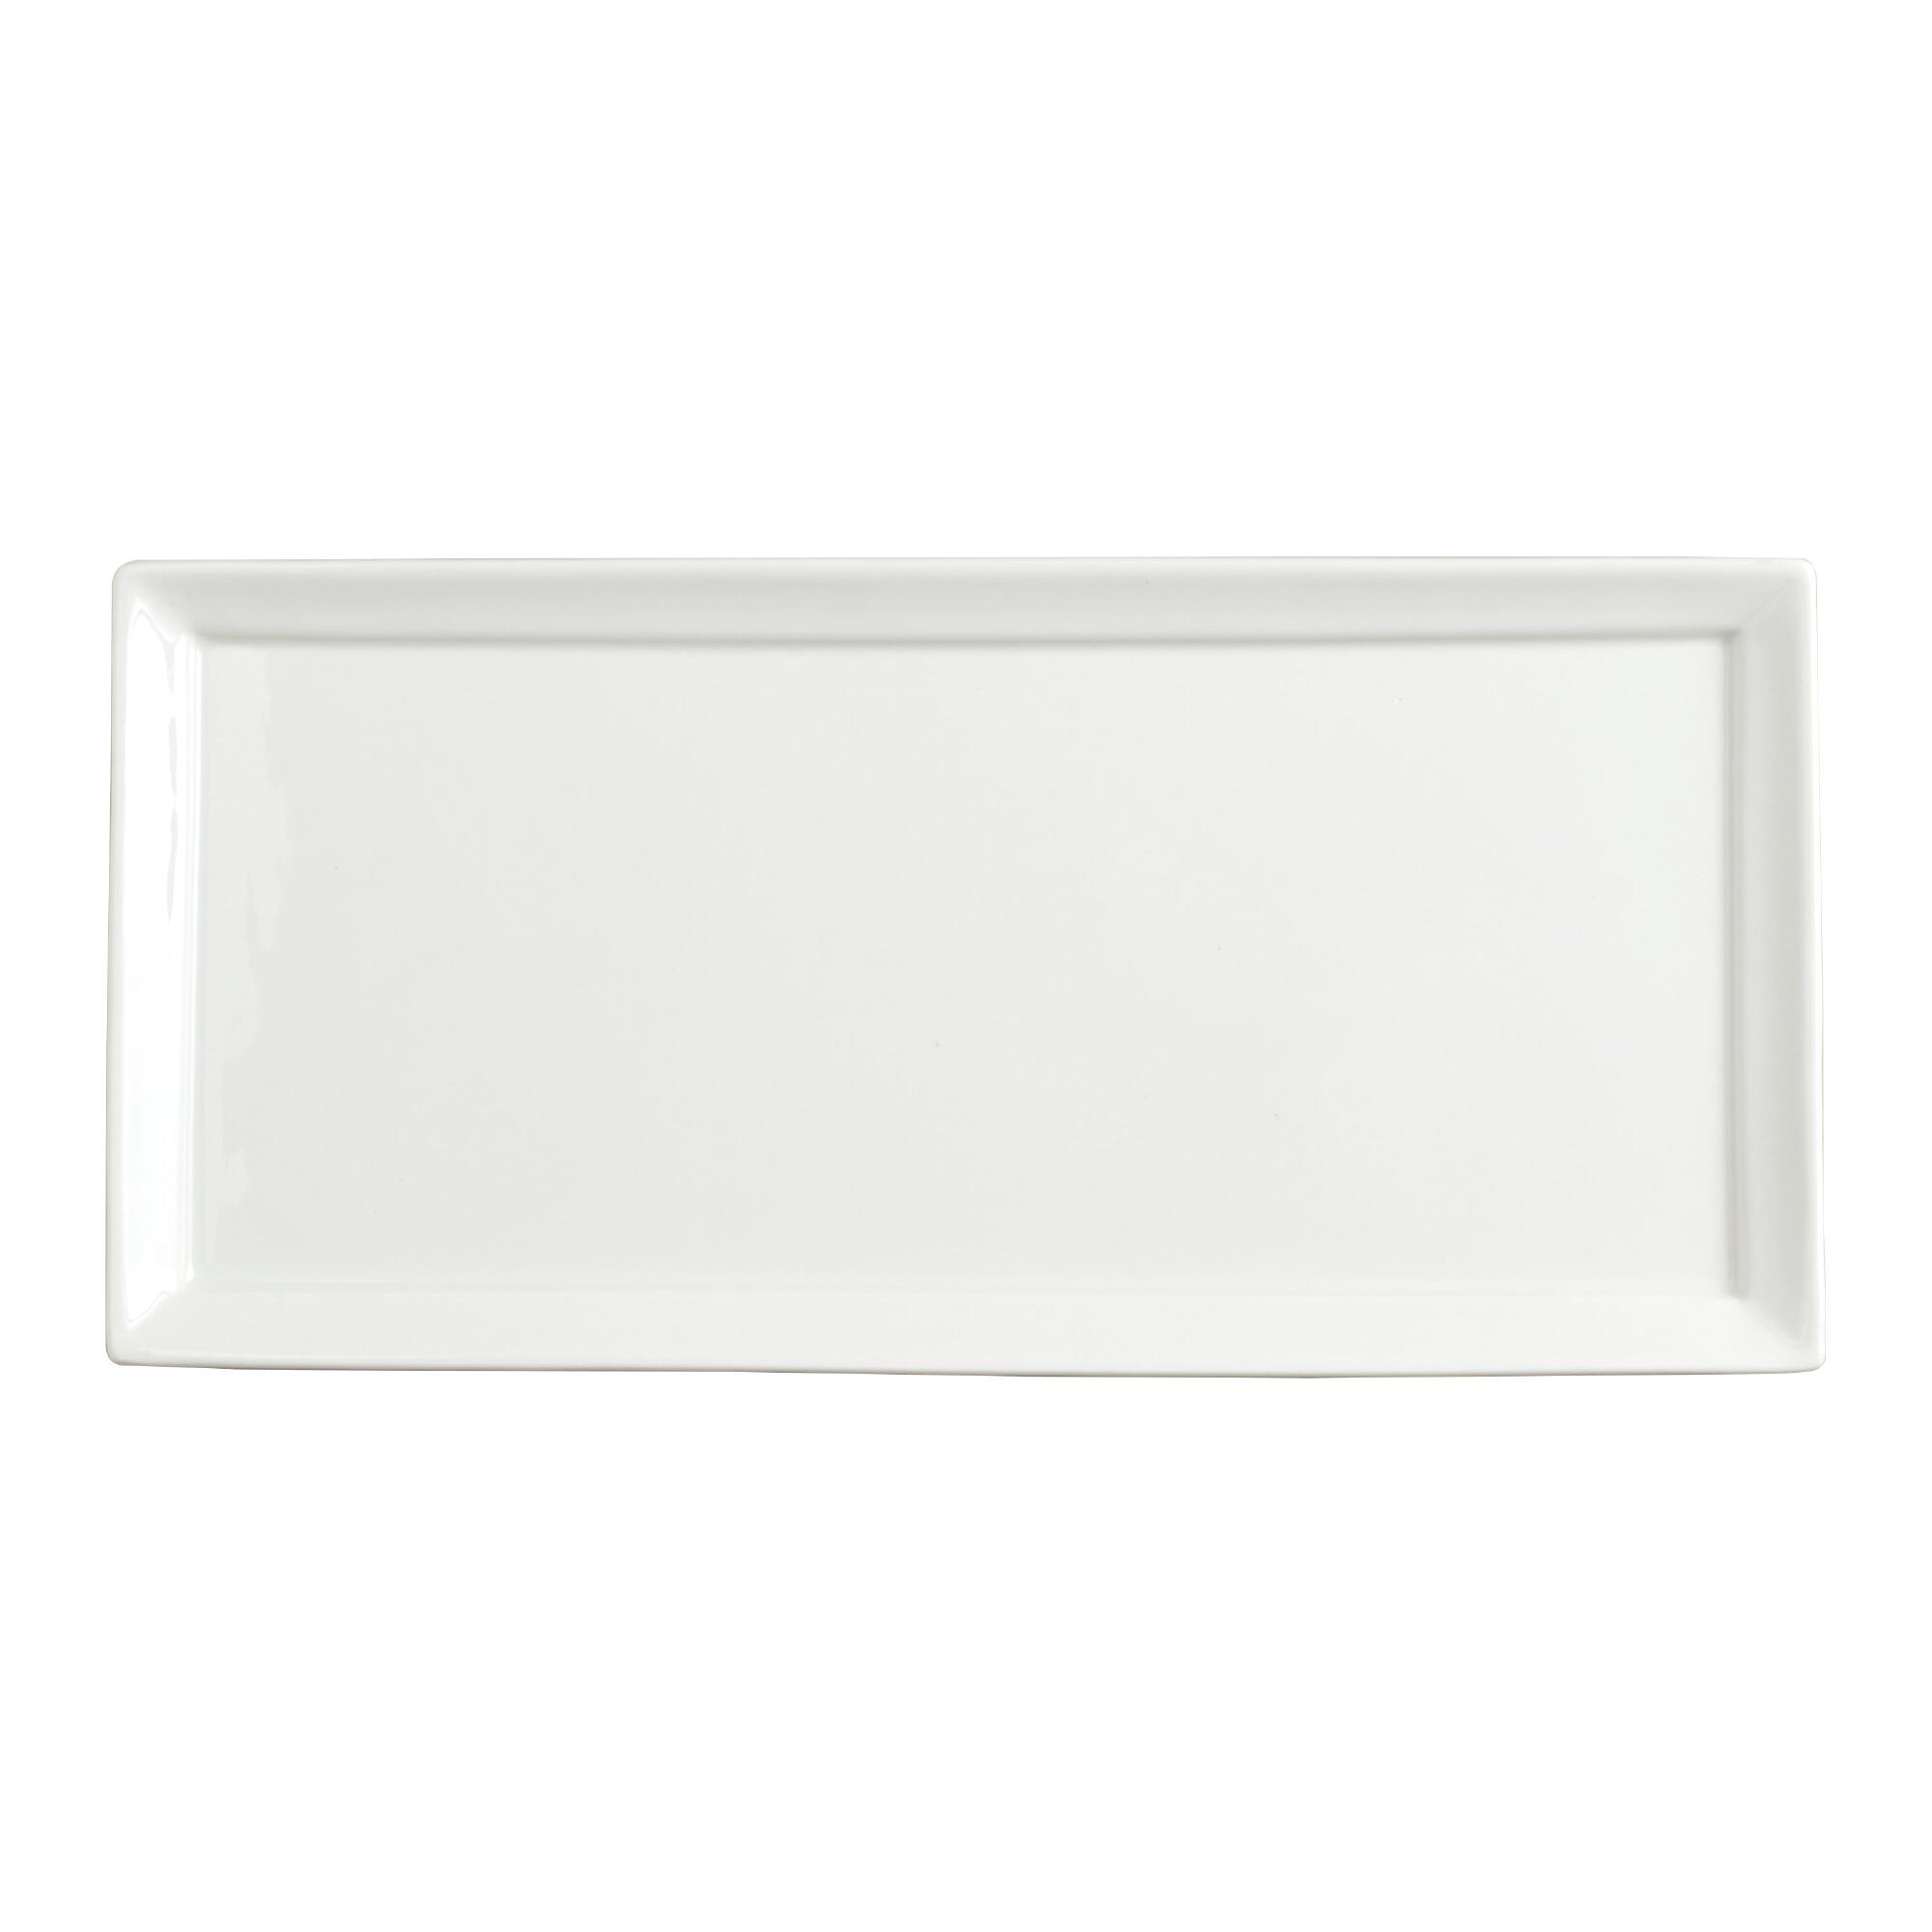 Plain White Rectangle